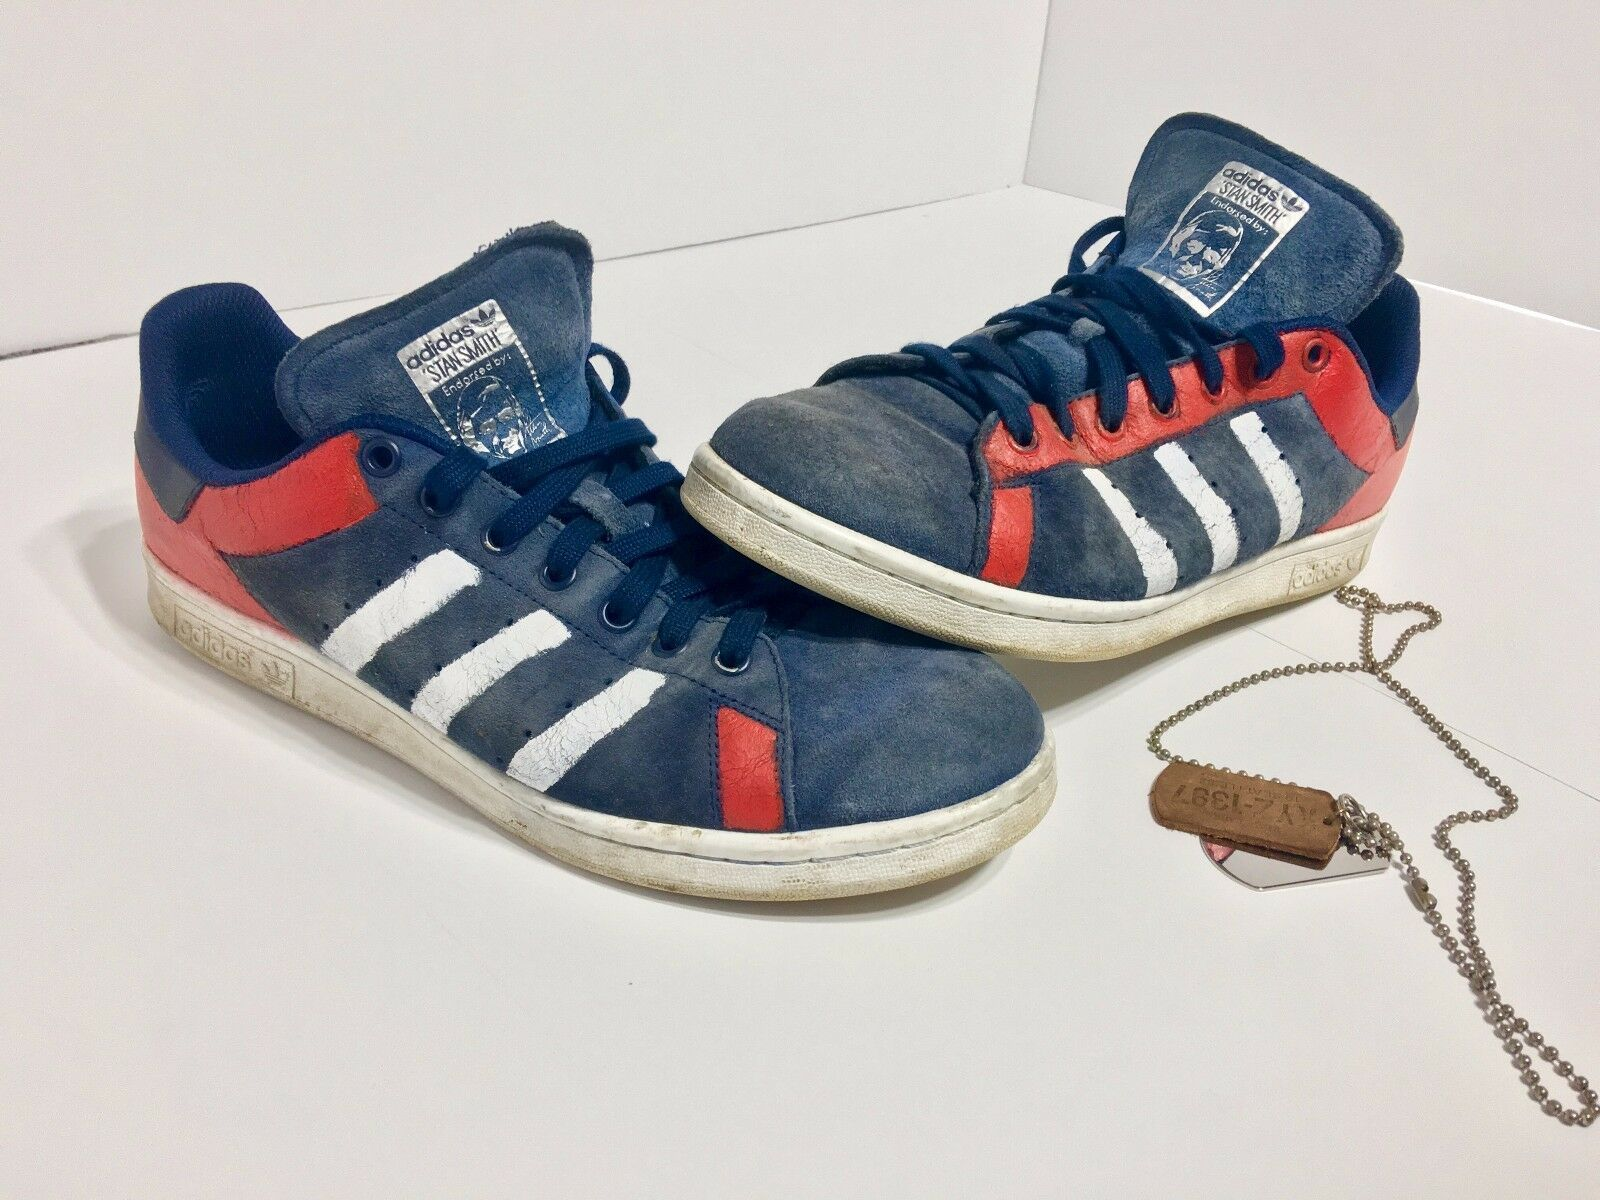 Adidas StanSmith Suede Blue Custom Red&White Exclusive Collective item Sneaker